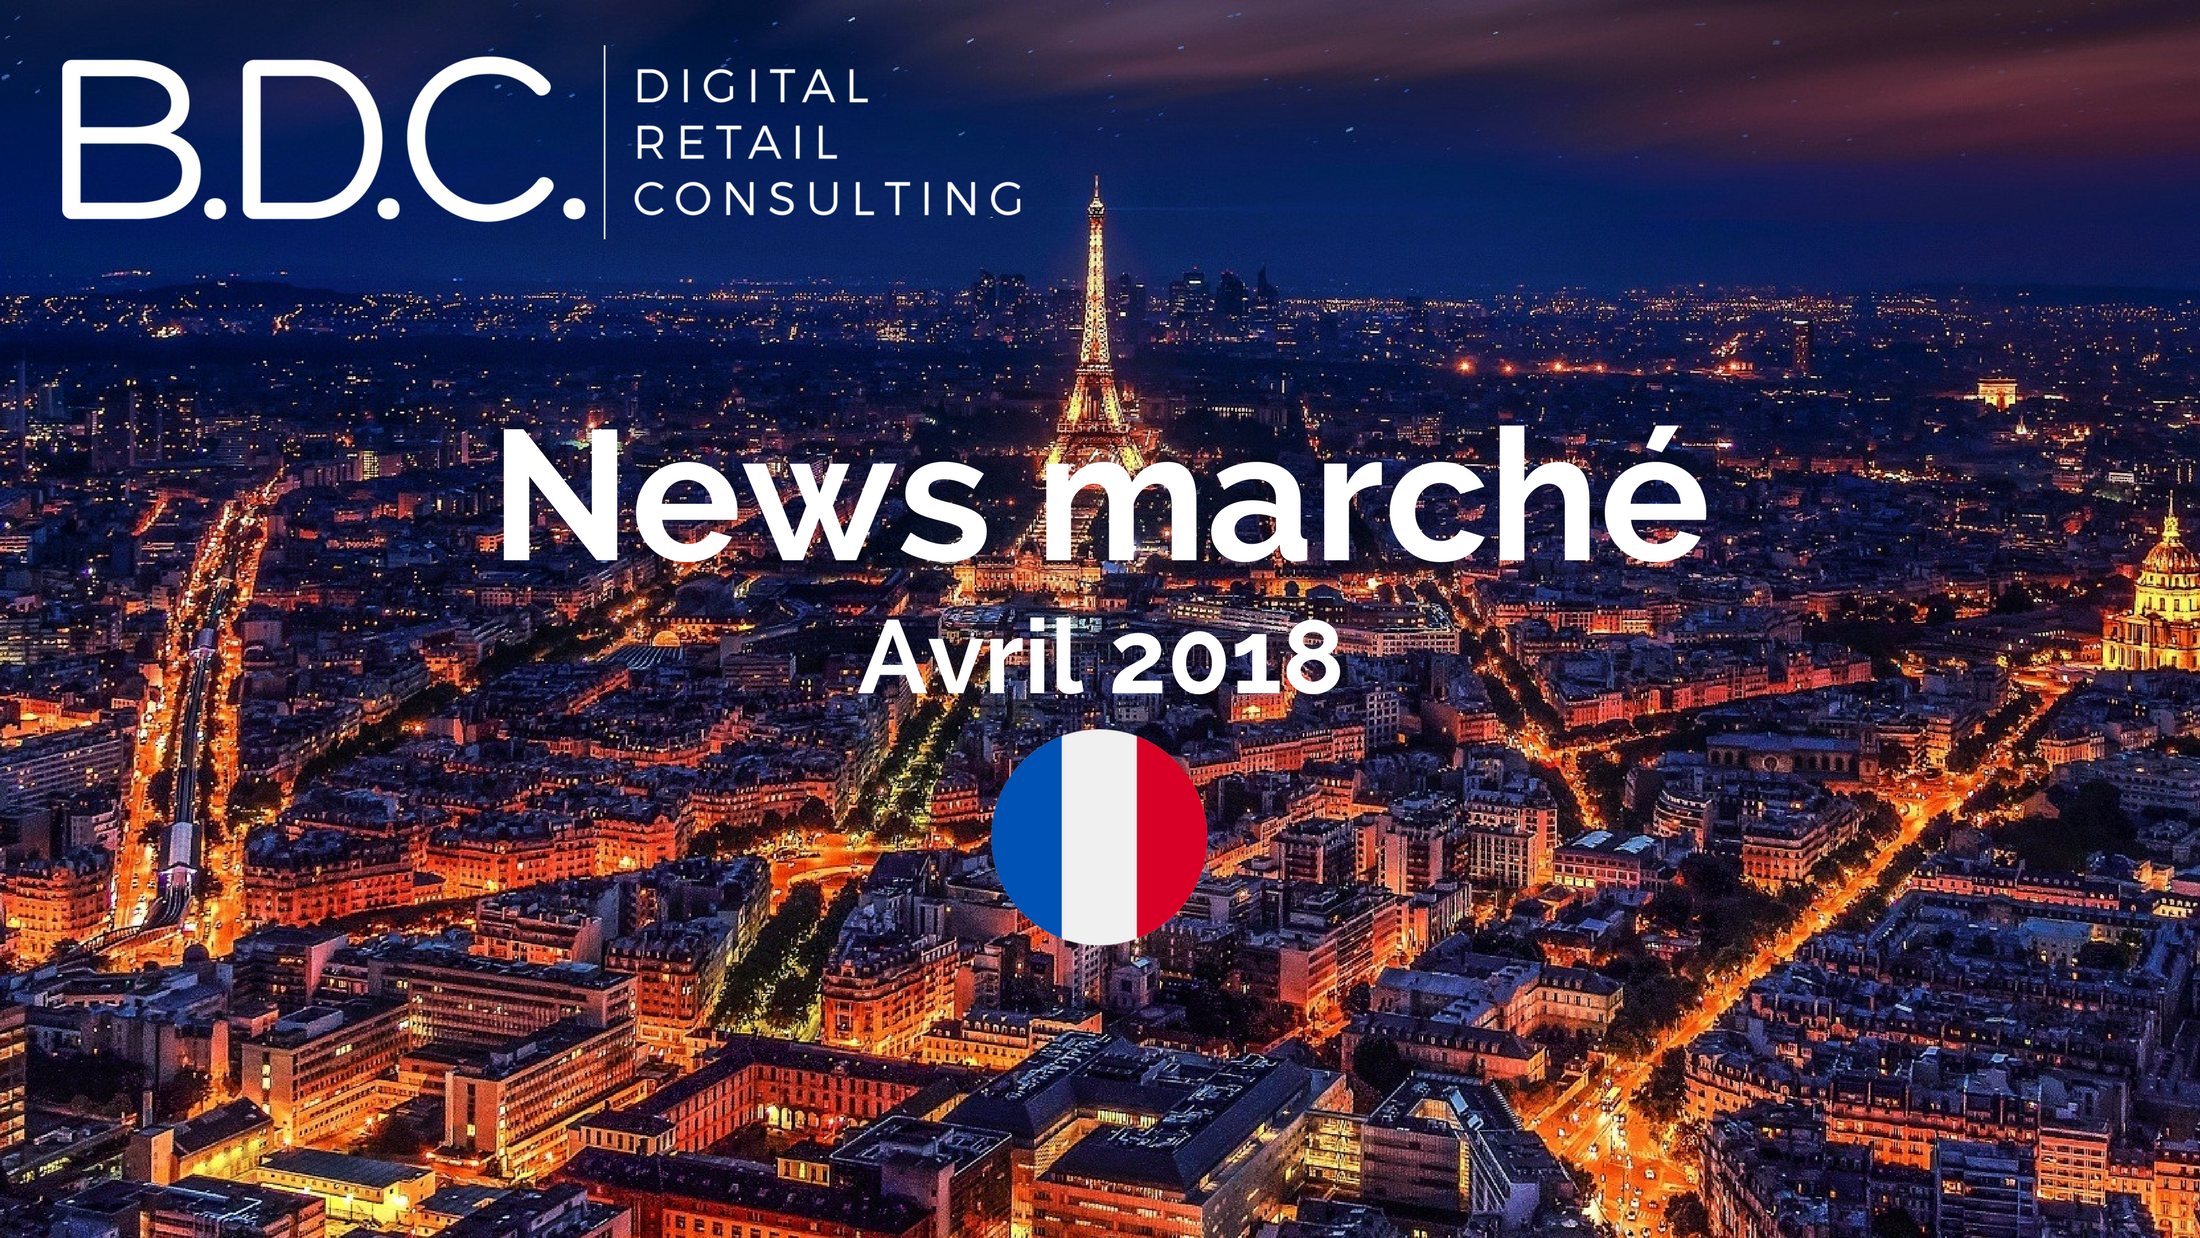 Trends News suite - News marché - Avril 2018